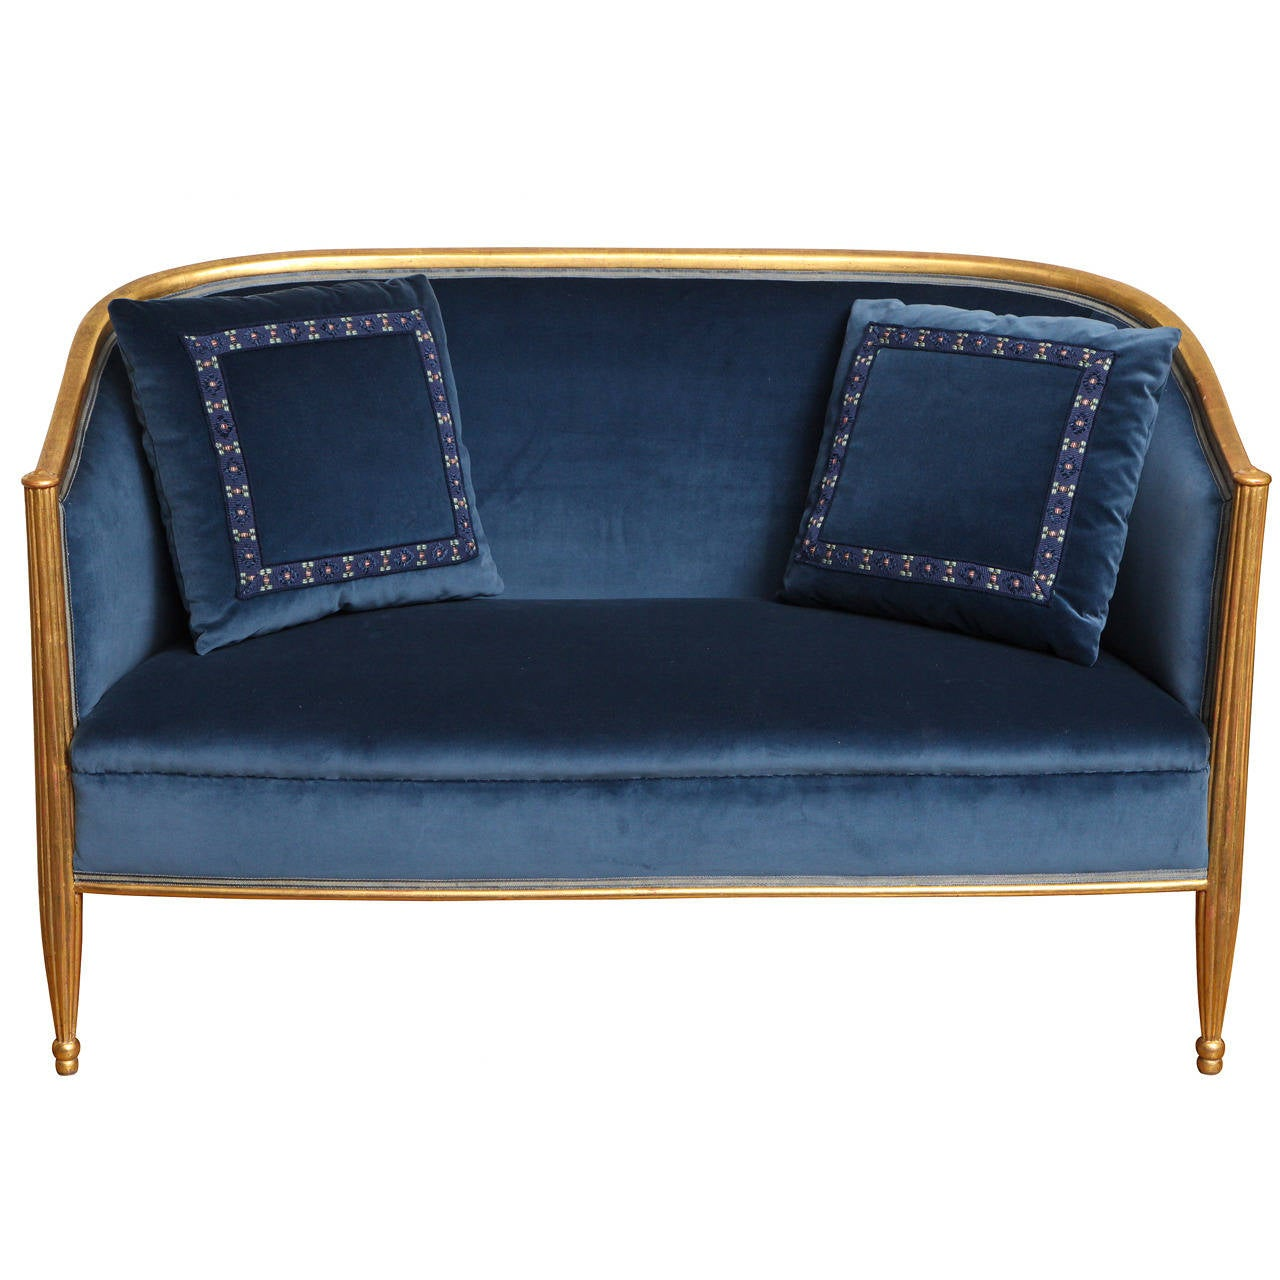 French art deco sofa in the manner of paul follot for sale for French divan chair